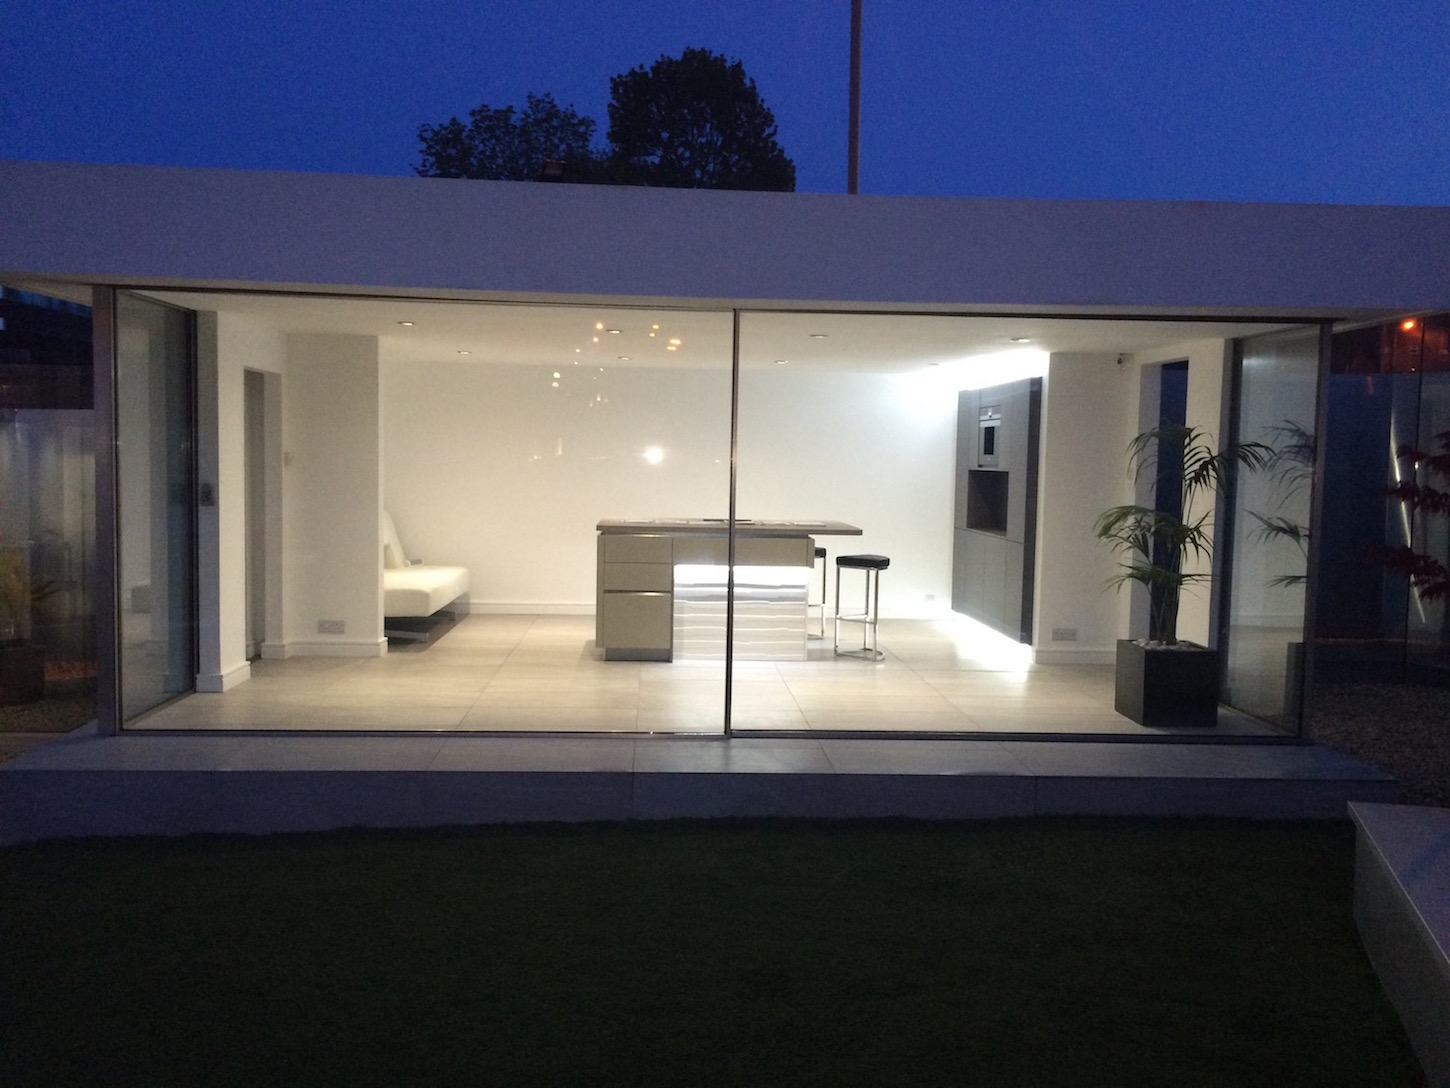 Architectural Slimline Sliding Doors & Architectural slimline sliding doors | DWL Windows